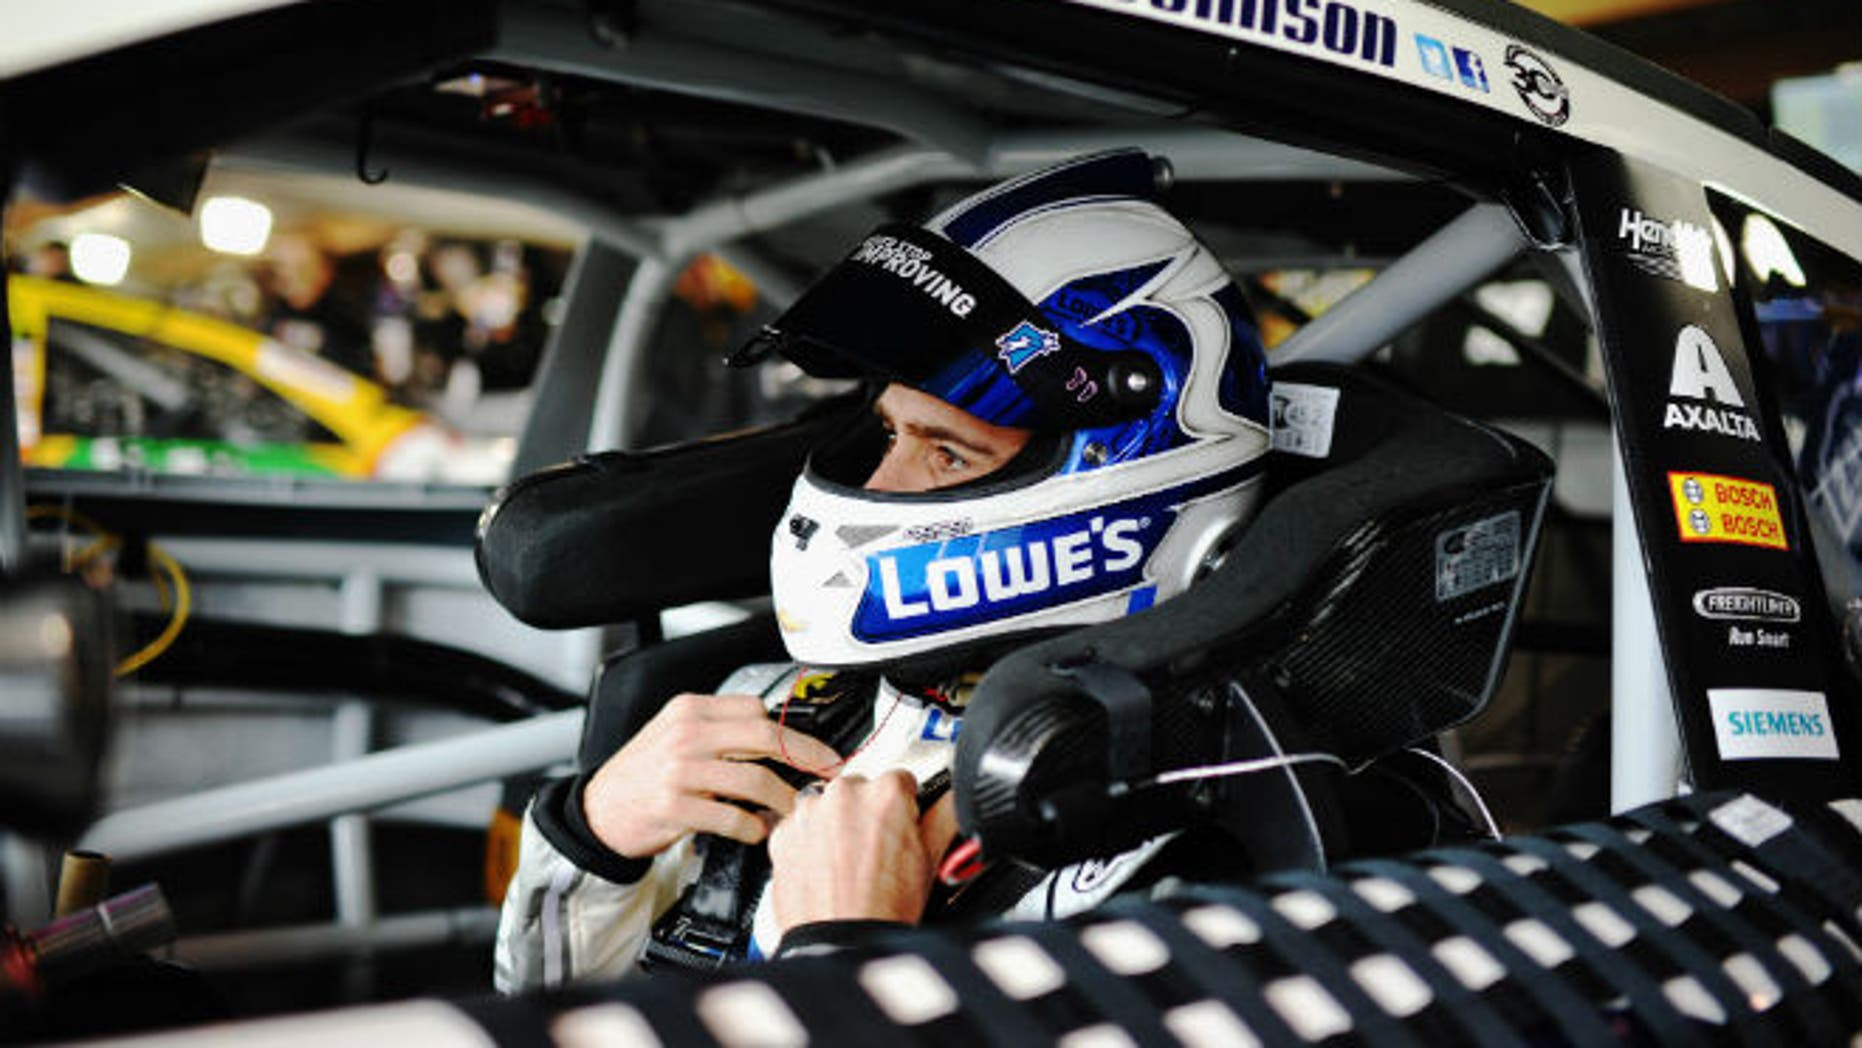 Jimmie Johnson, six-time NASCAR Sprint Cup Series champion and driver of the #48 Lowe's Chevrolet, sits in his car during practice for the NASCAR Sprint Cup Series STP 500 at Martinsville Speedway on March 28, 2014 in Martinsville, Virginia. The HANS device is the collar attached to the helmet via tether; it is also secured to the shoulder harness and seat. (Photo by Rainier Ehrhardt/NASCAR via Getty Images)